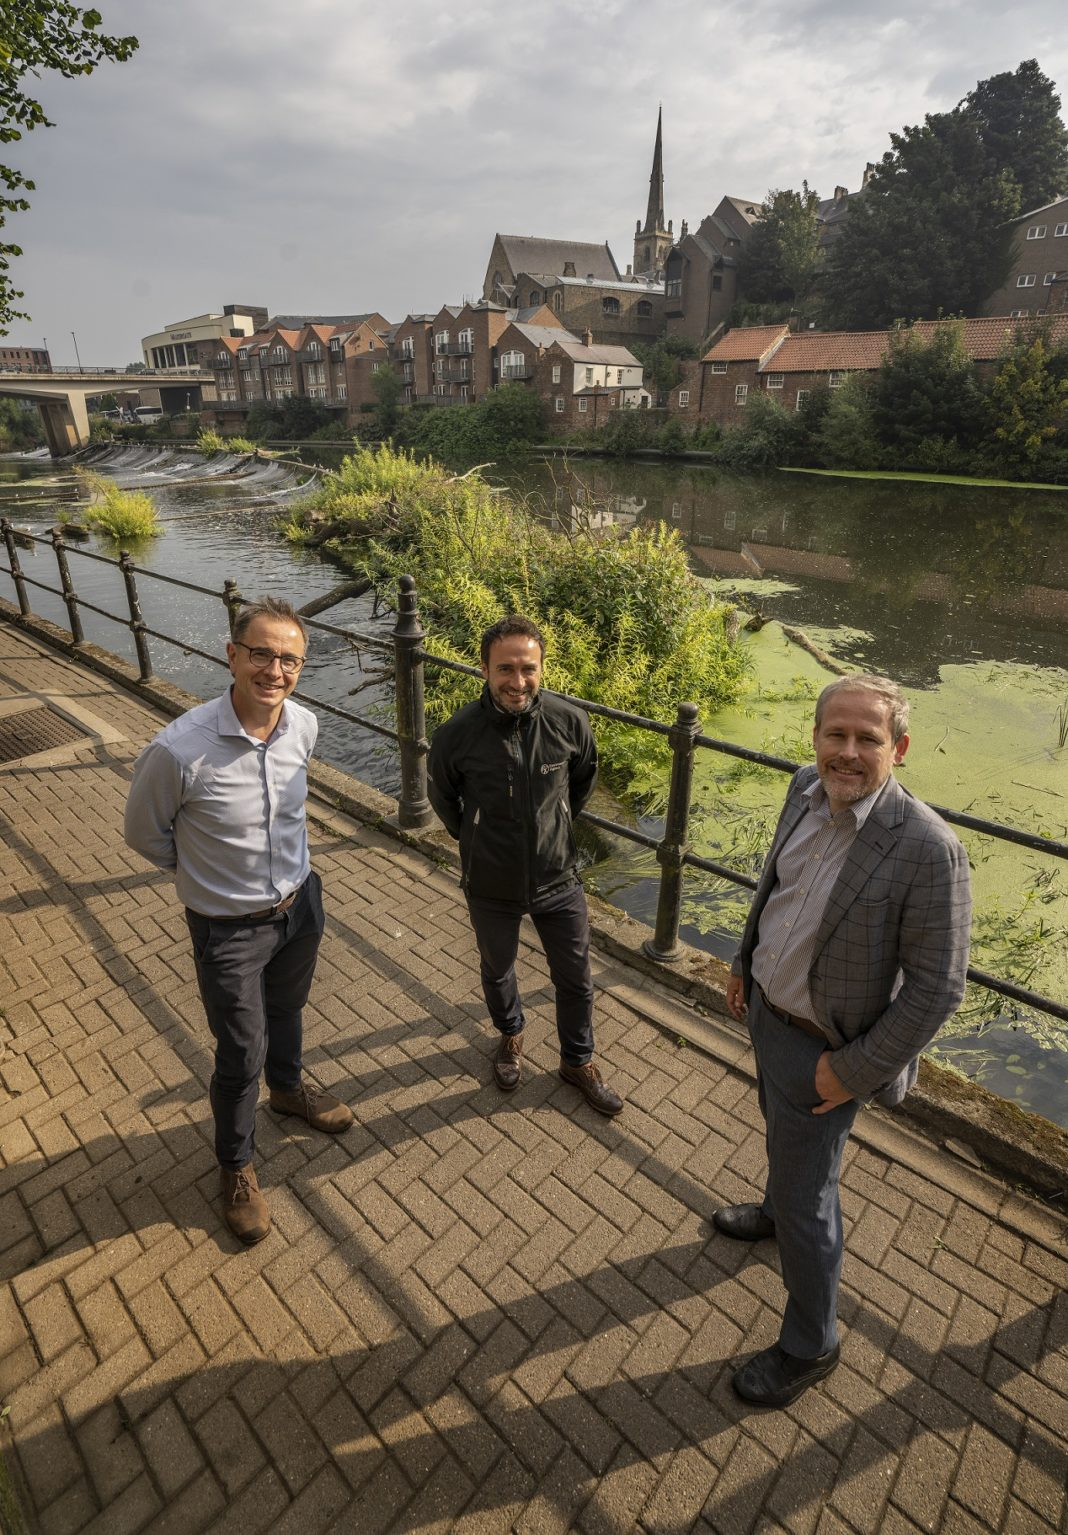 Durham City's Working To Keep Our Rivers And Paths Clear